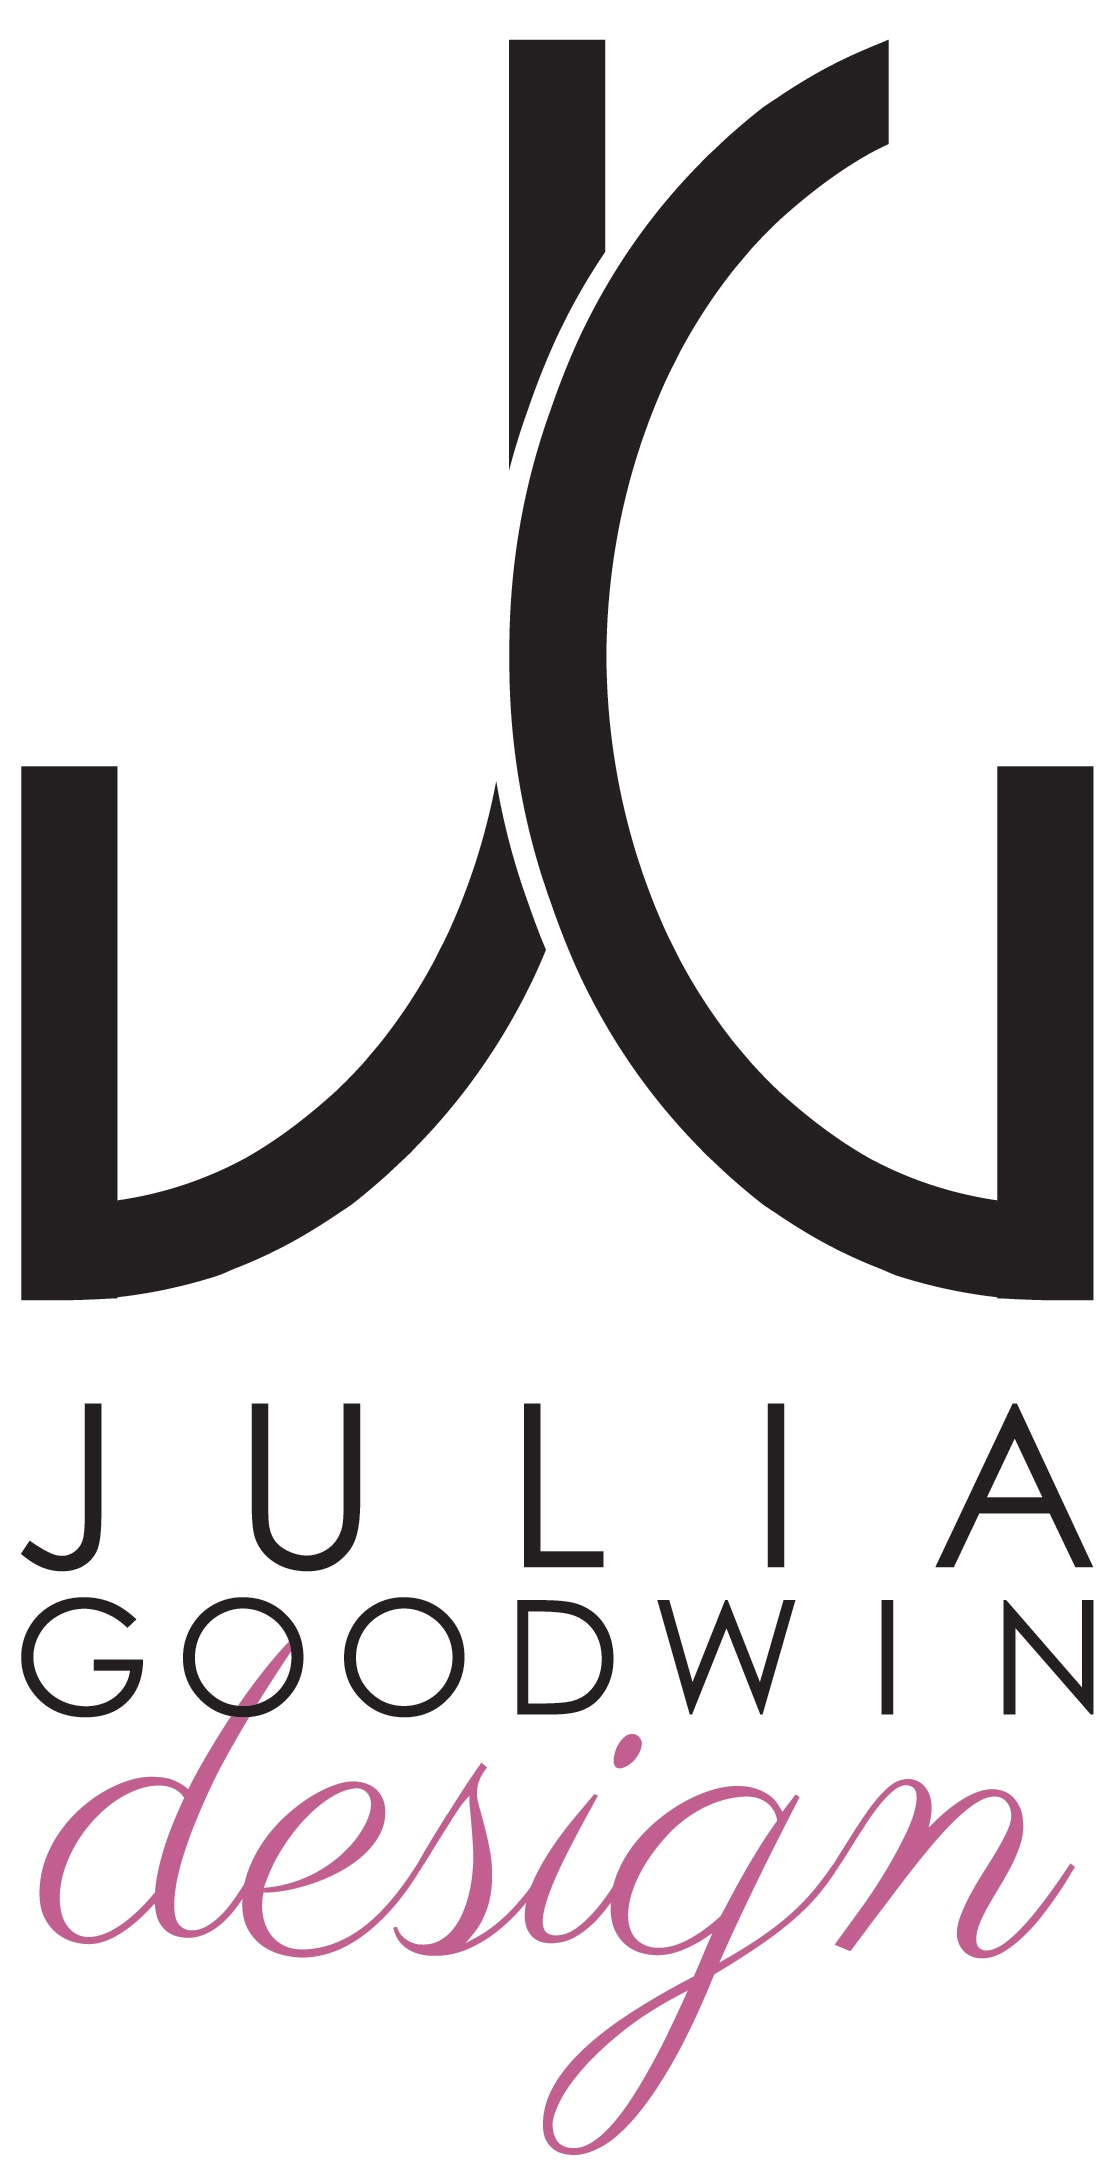 Julia Goodwin Design